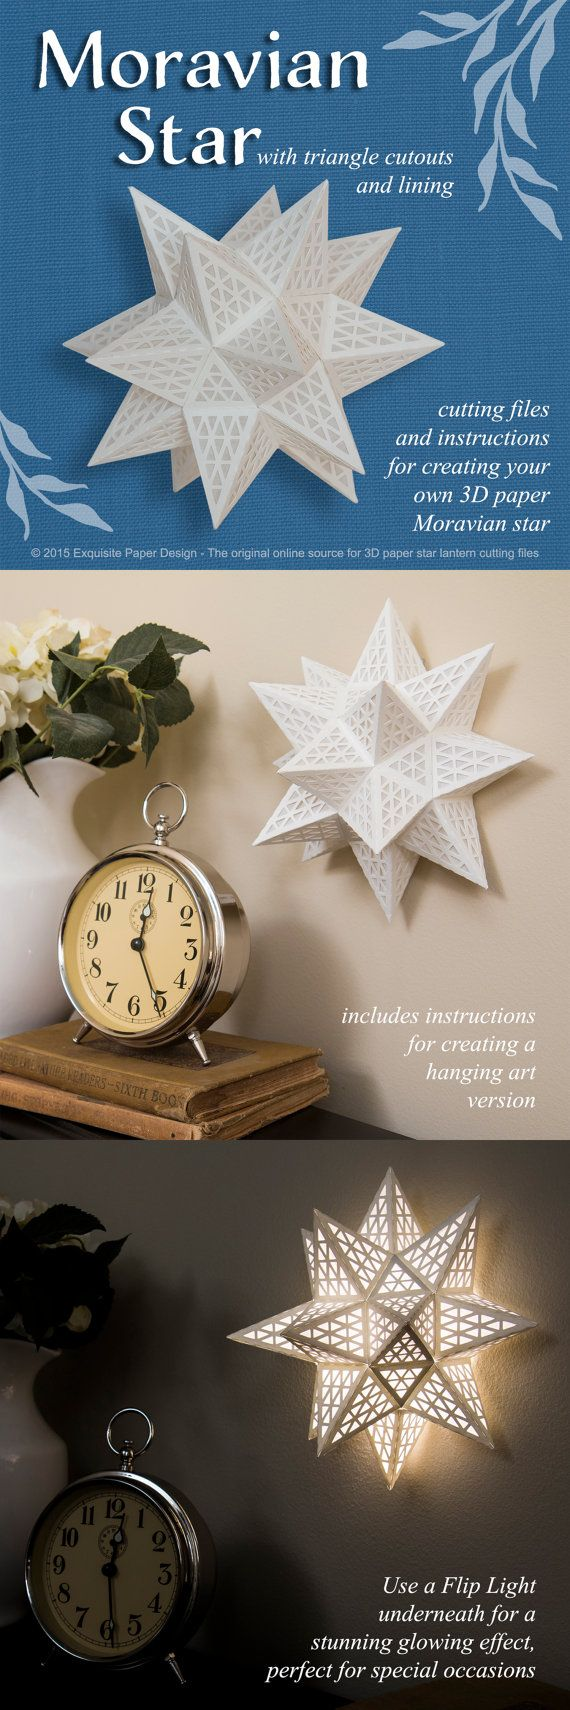 Cutting Files - Moravian Paper Star w Triangle Cutouts by ExquisitePaperDesign